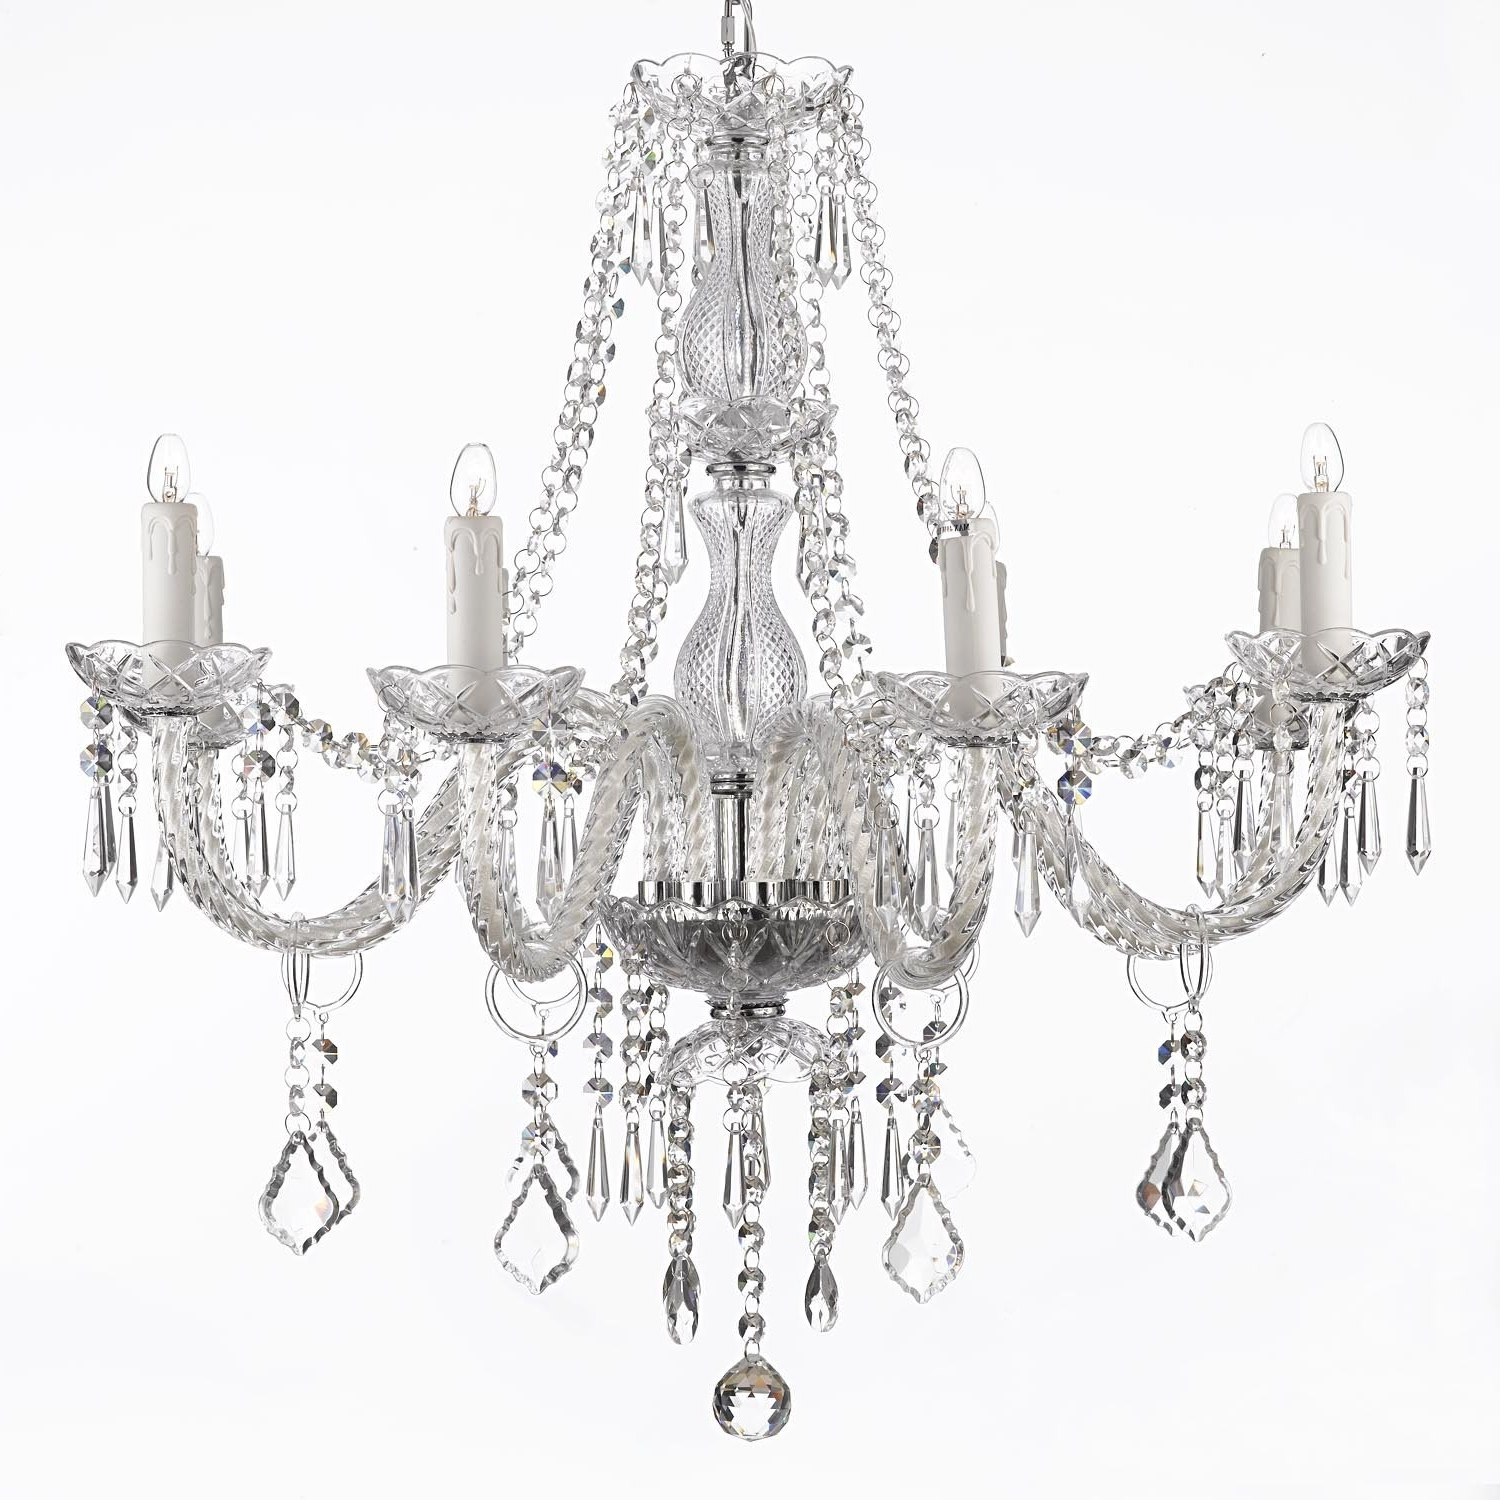 [%How To Choose The Best Chandelier [Buyer's Guide] Inside Fashionable Hanging Candelabra Chandeliers|Hanging Candelabra Chandeliers Regarding Well Known How To Choose The Best Chandelier [Buyer's Guide]|Fashionable Hanging Candelabra Chandeliers Pertaining To How To Choose The Best Chandelier [Buyer's Guide]|Recent How To Choose The Best Chandelier [Buyer's Guide] In Hanging Candelabra Chandeliers%] (View 7 of 20)